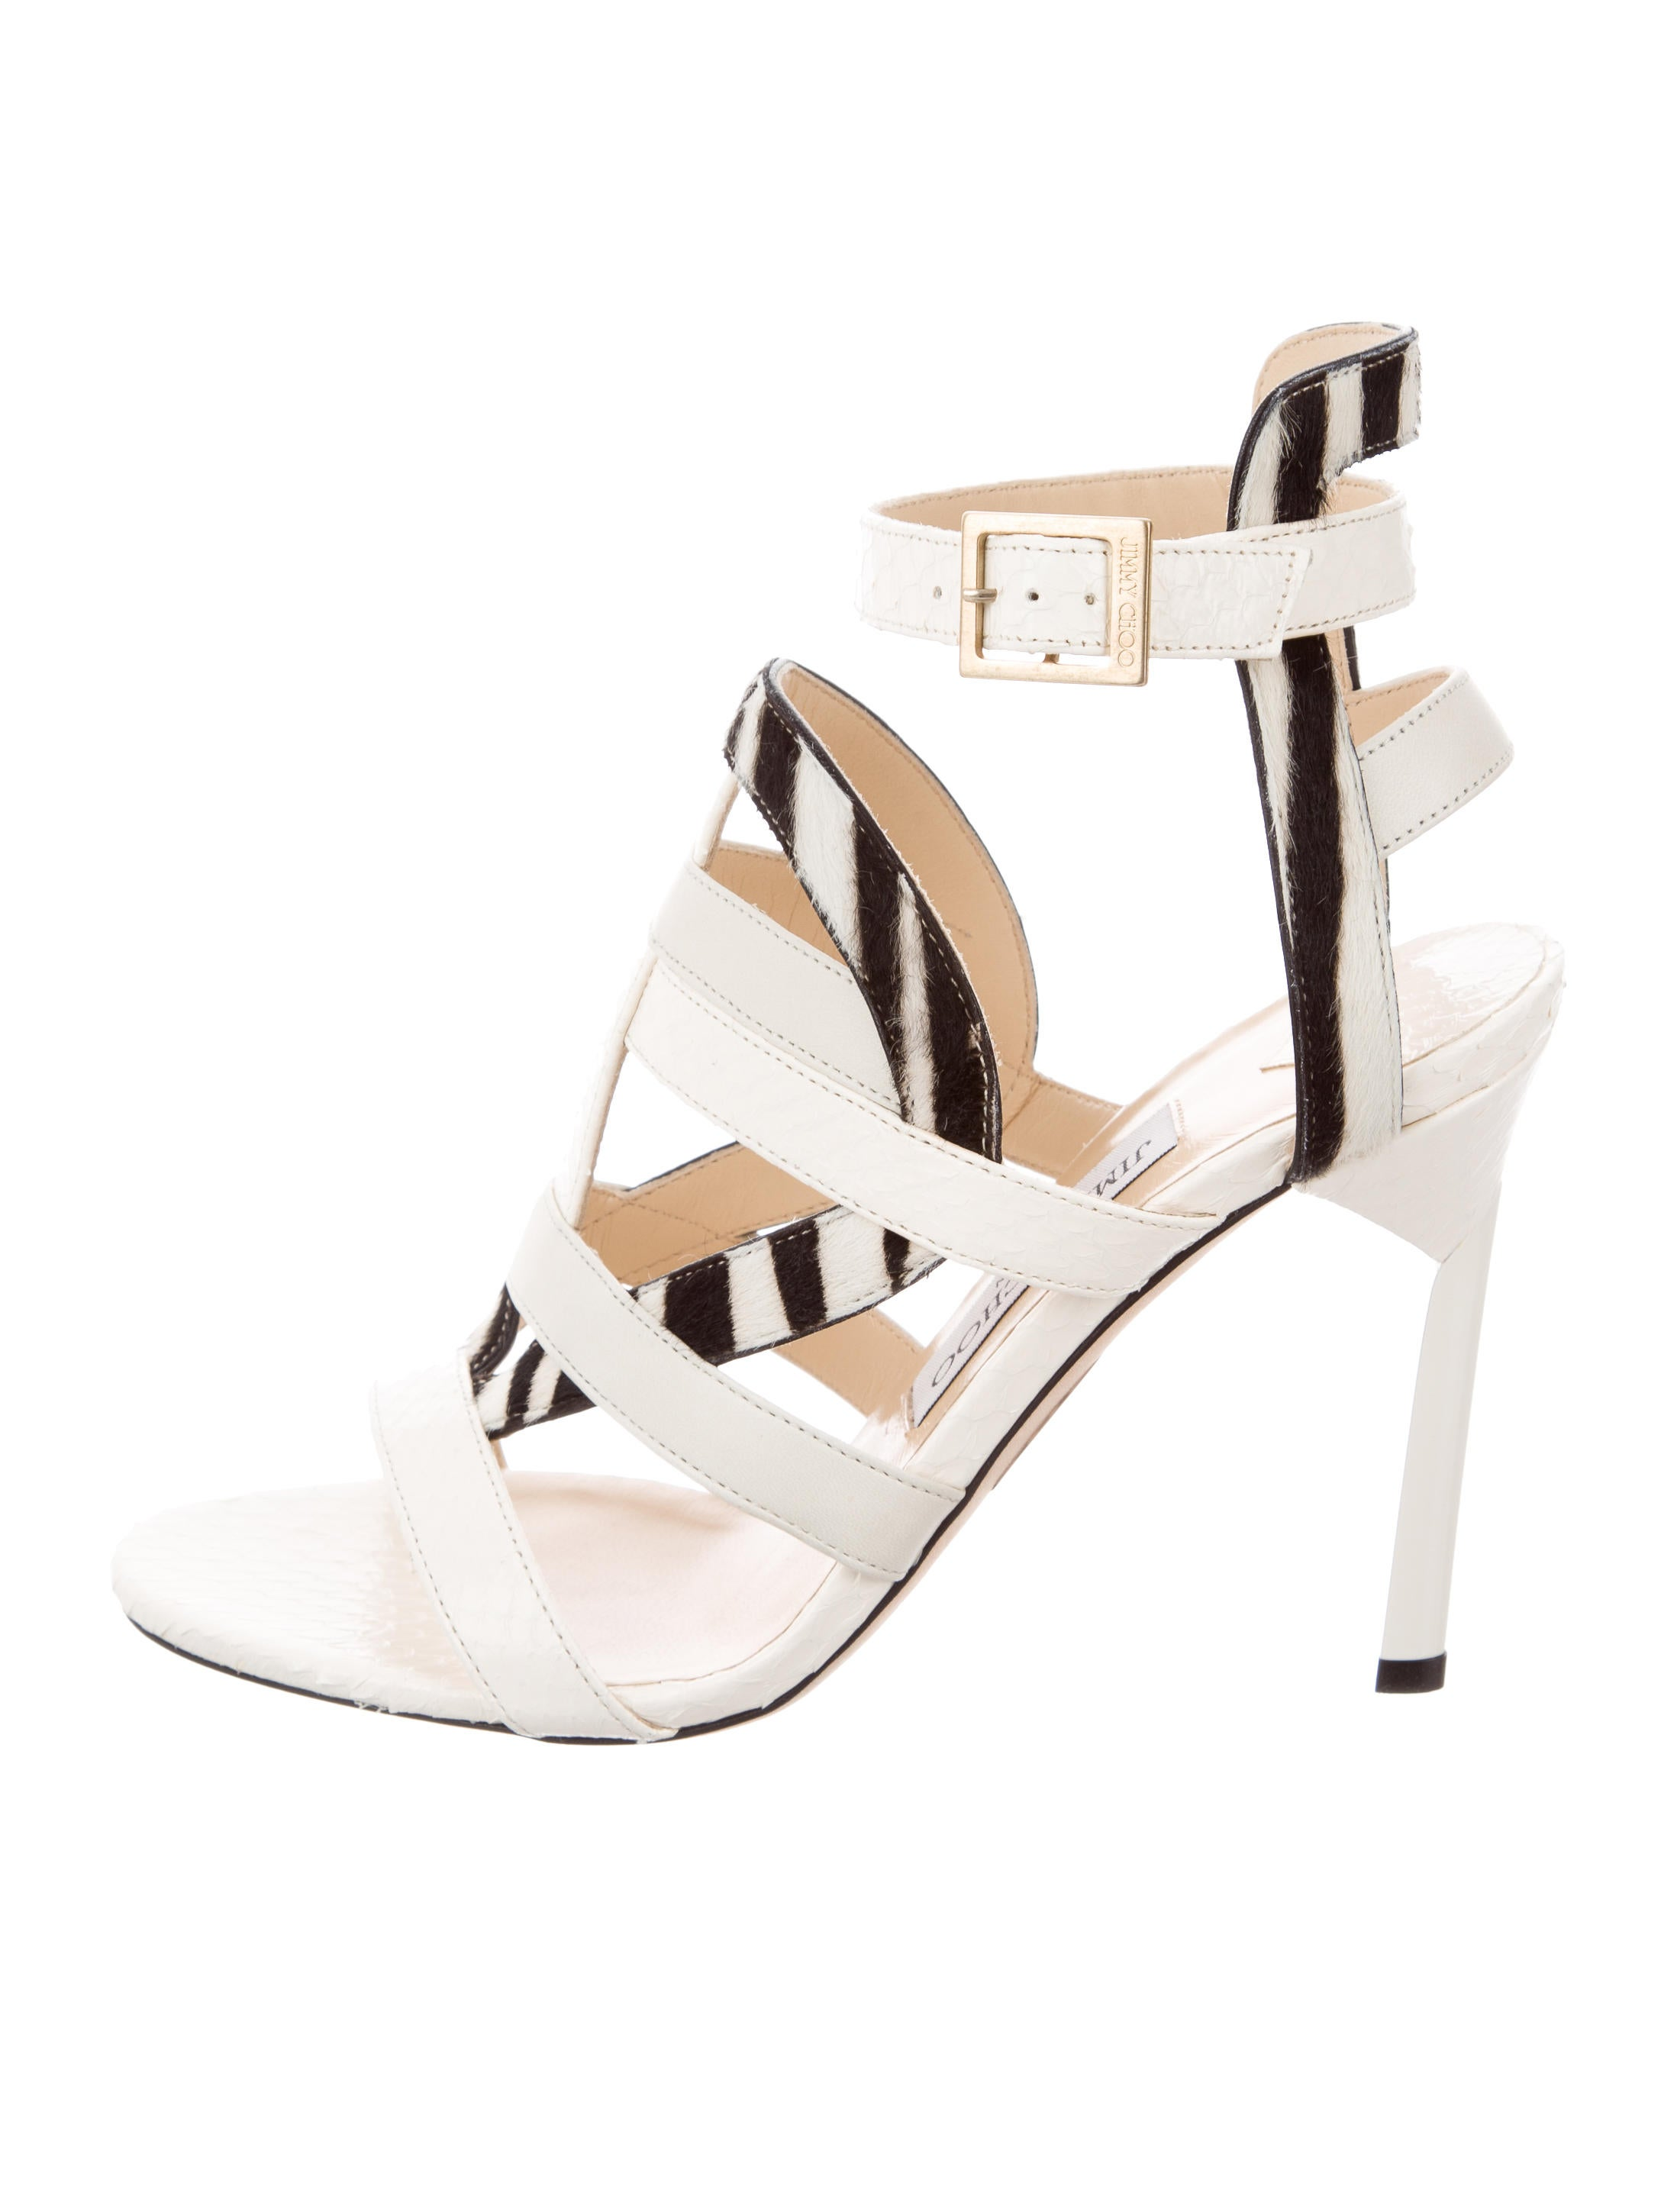 Jimmy Choo Vanquish Snakeskin Sandals w/ Tags buy cheap recommend big discount sale online clearance 100% original find great cheap price newest cheap price dtVHqmtbwf